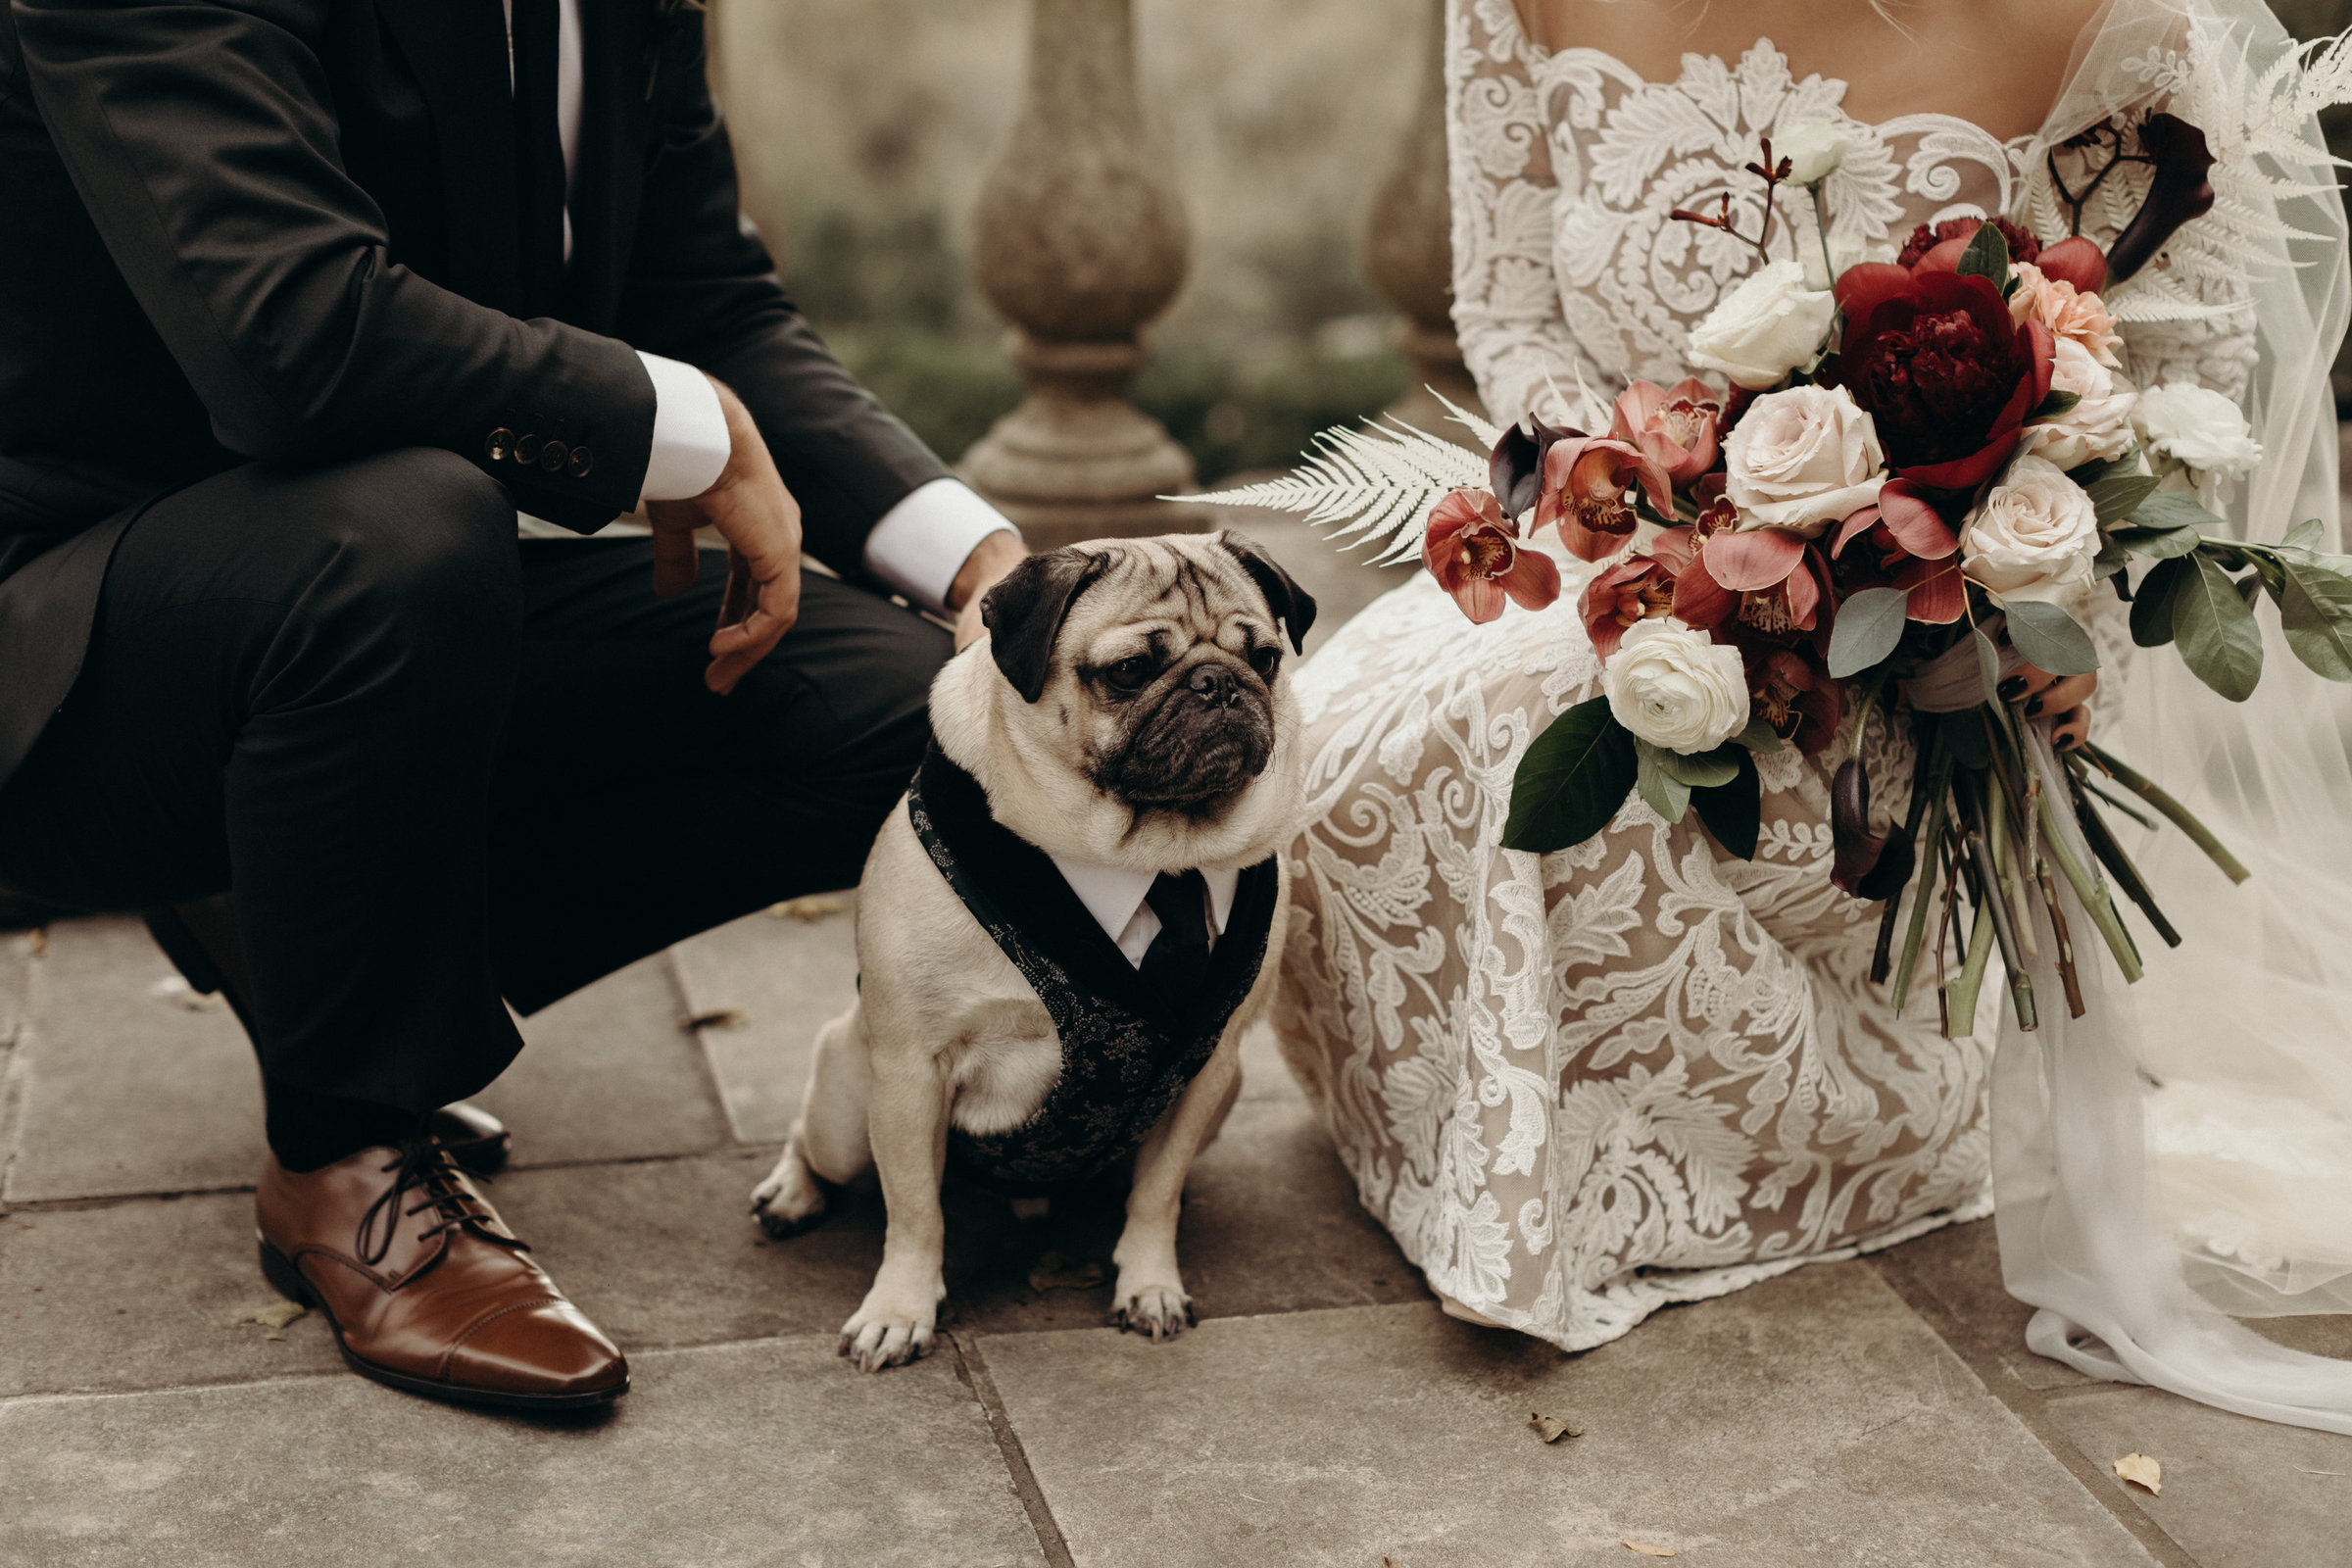 Leslie and Rob - Nashville Wedding with Doug the pug - Victoria Bonvicini-349